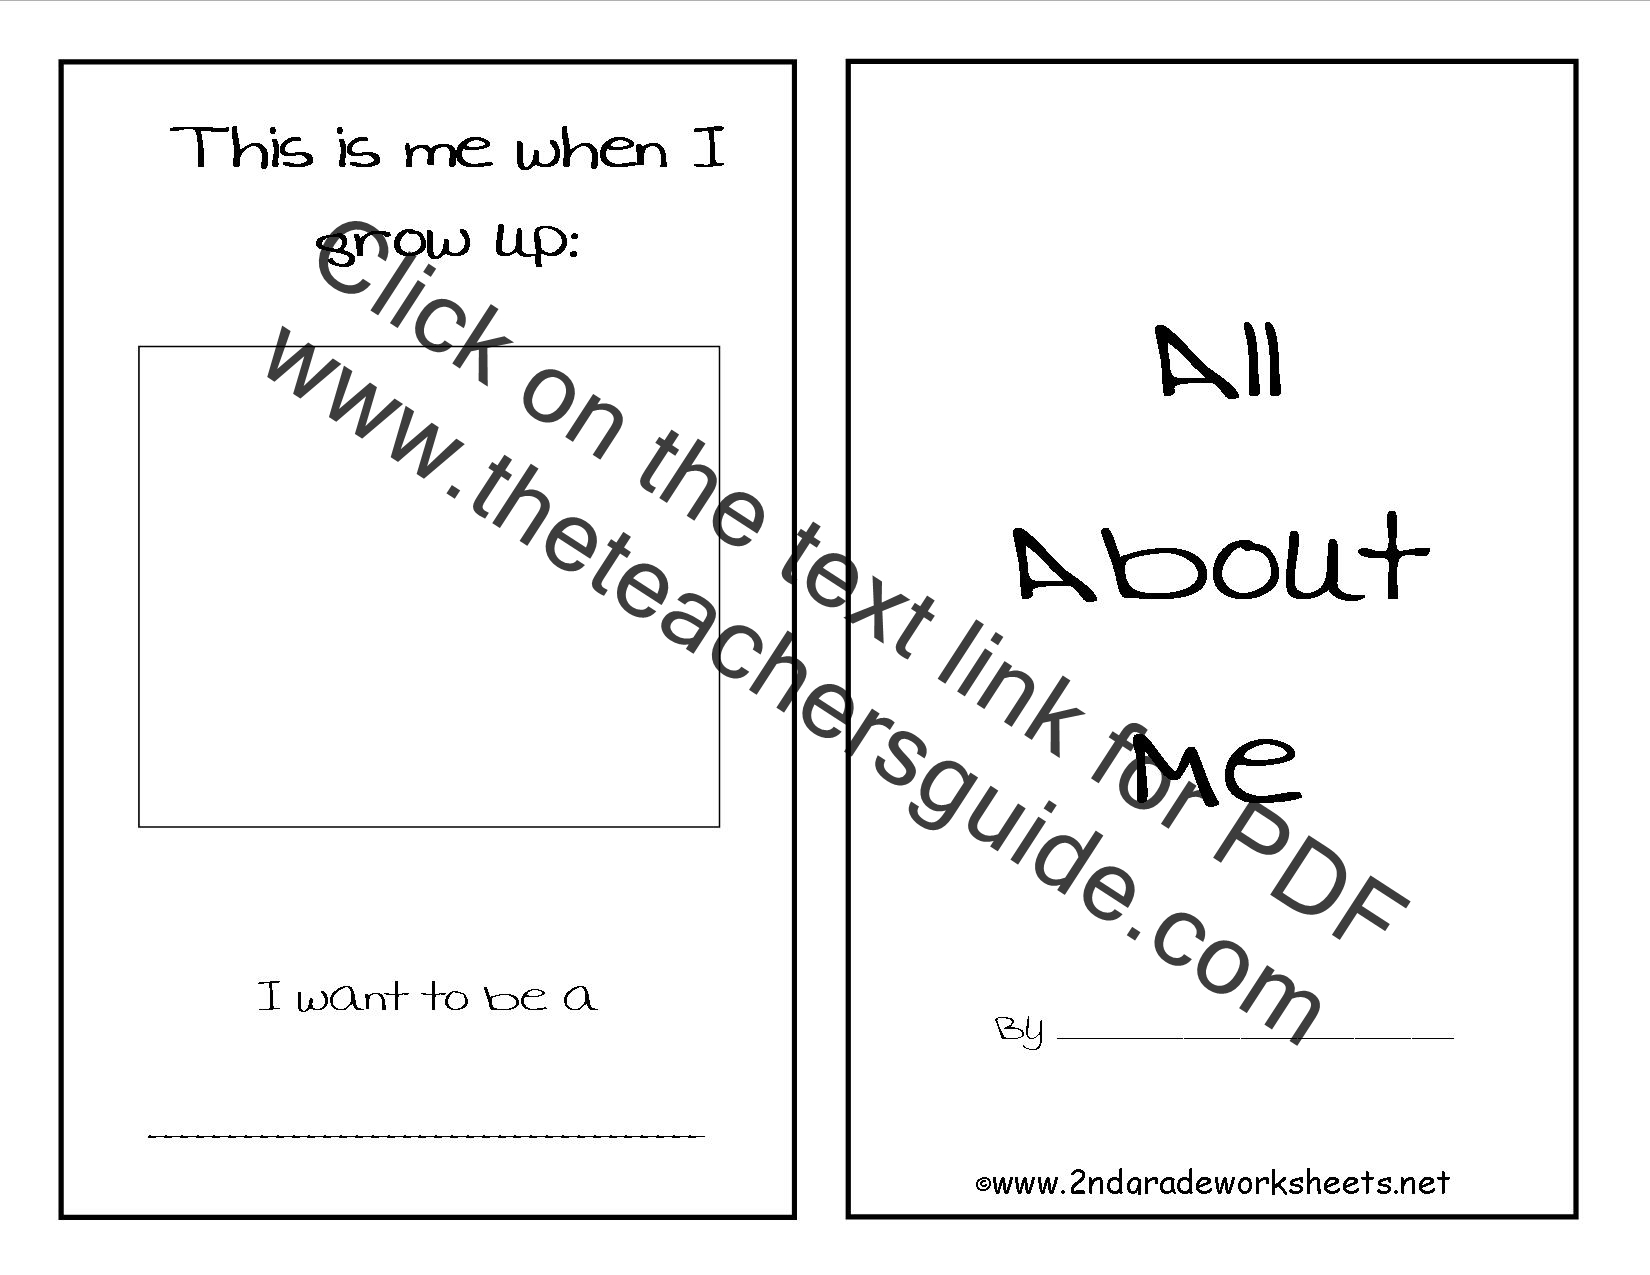 photo about All About Me Printable Worksheets named No cost Back again in direction of University Worksheets and Printouts